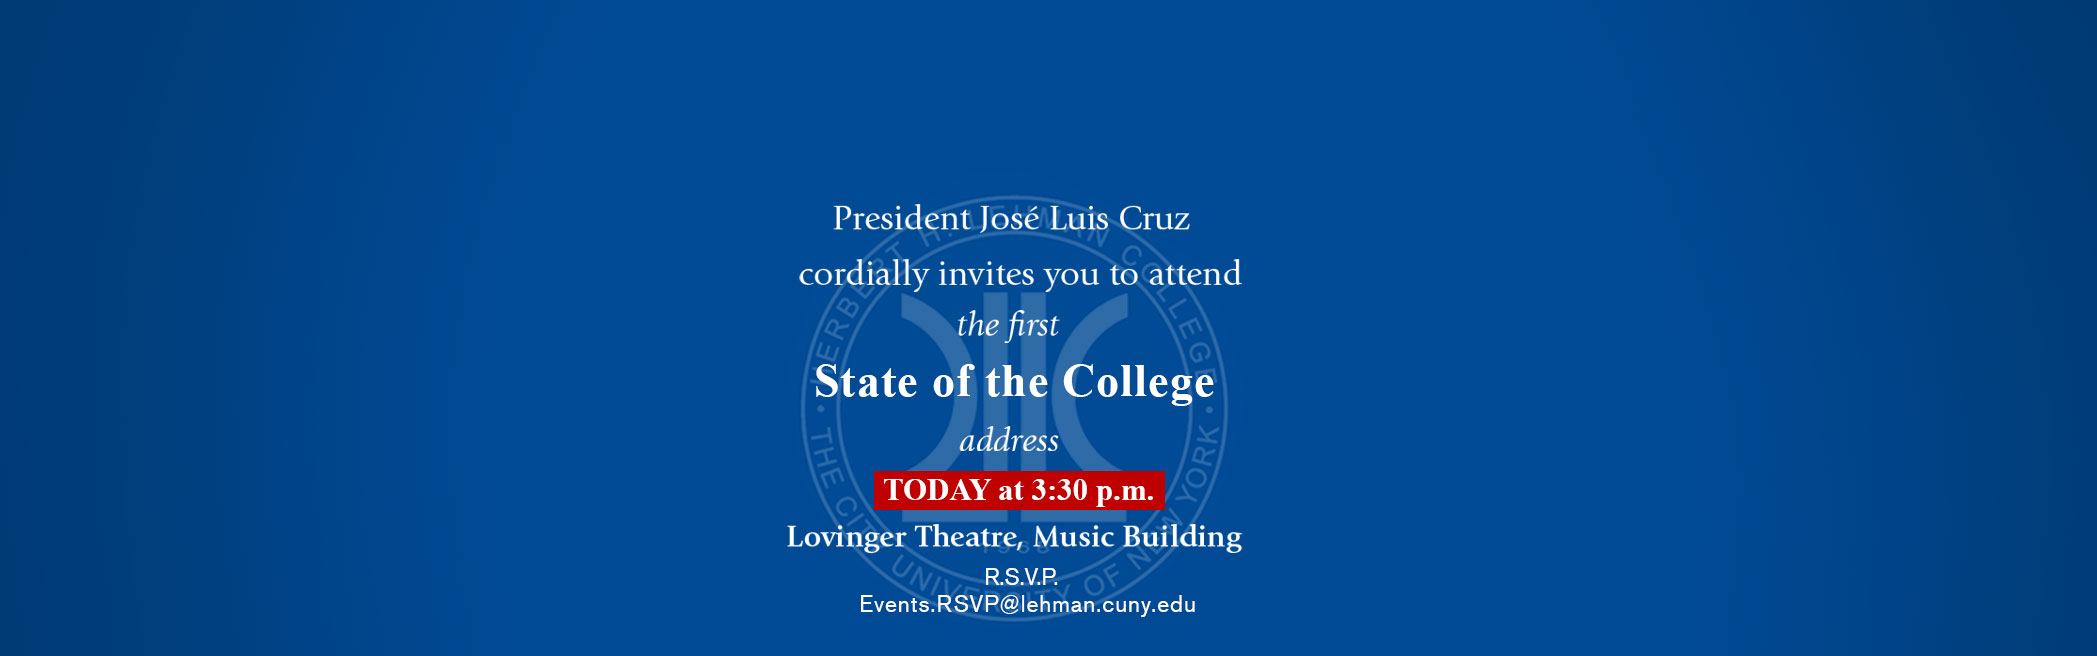 President José Luis Cruz State of the College Address